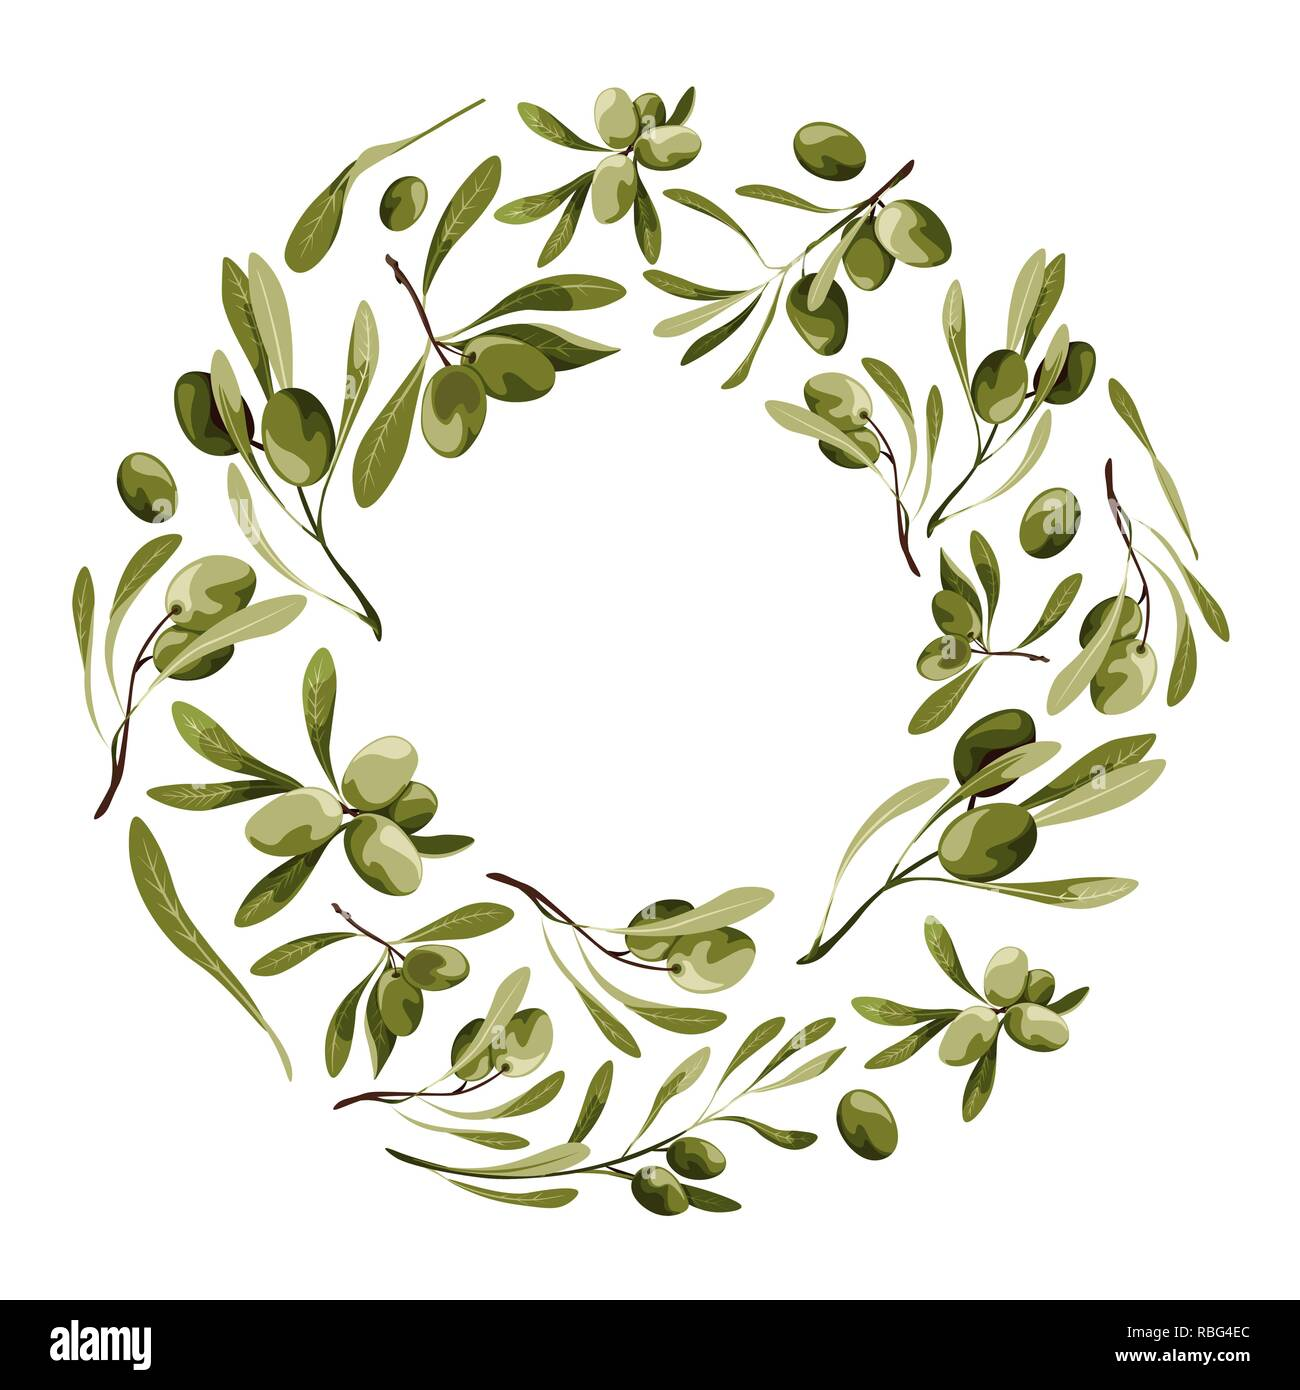 Vector wreath with olive tree. Nature frame with vegetables with leaves - Stock Image